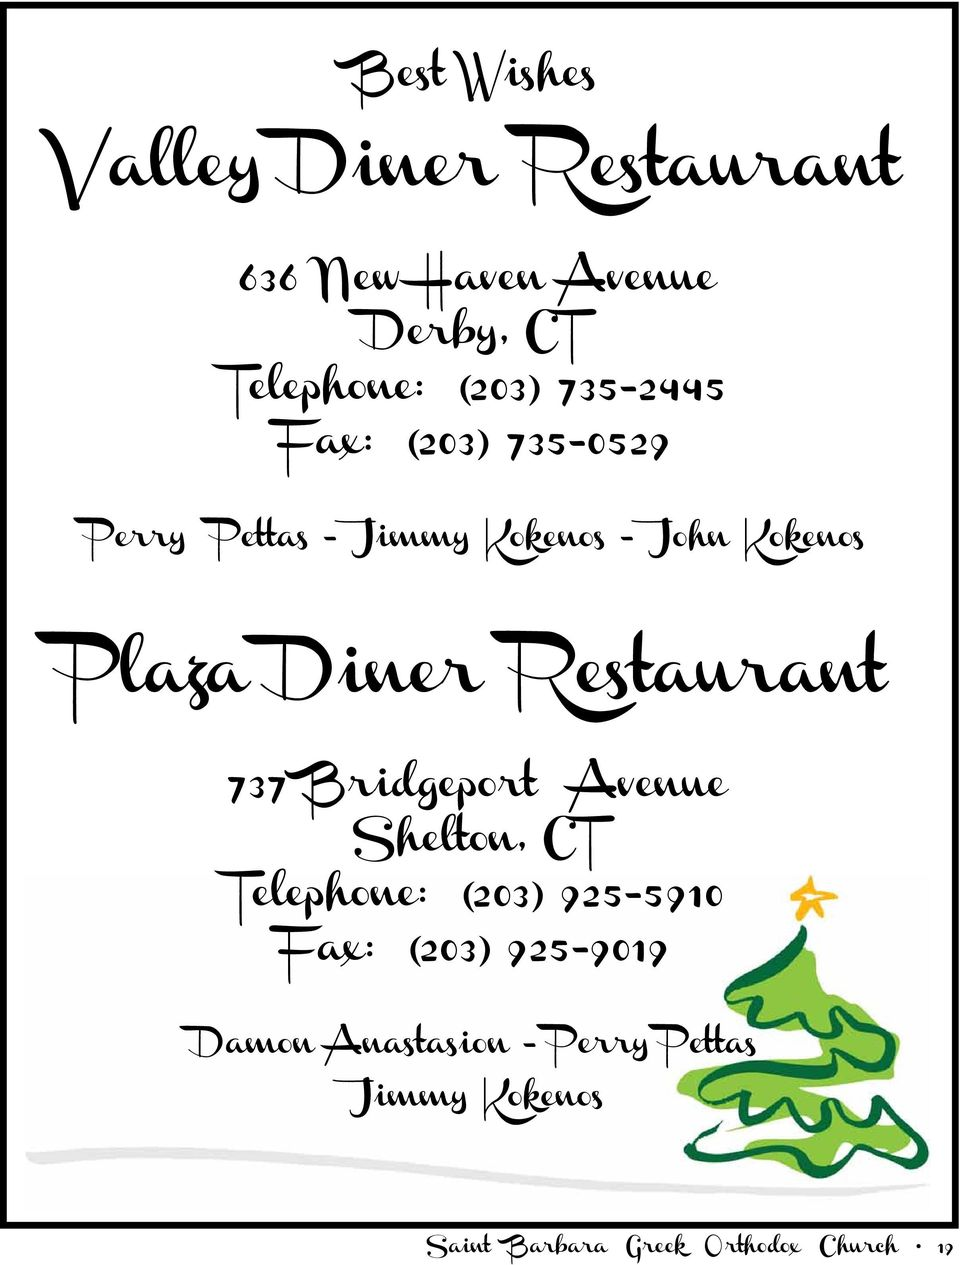 Restaurant 737 Bridgeport Avenue Shelton, CT Telephone: (203) 925-5910 Fax: (203)